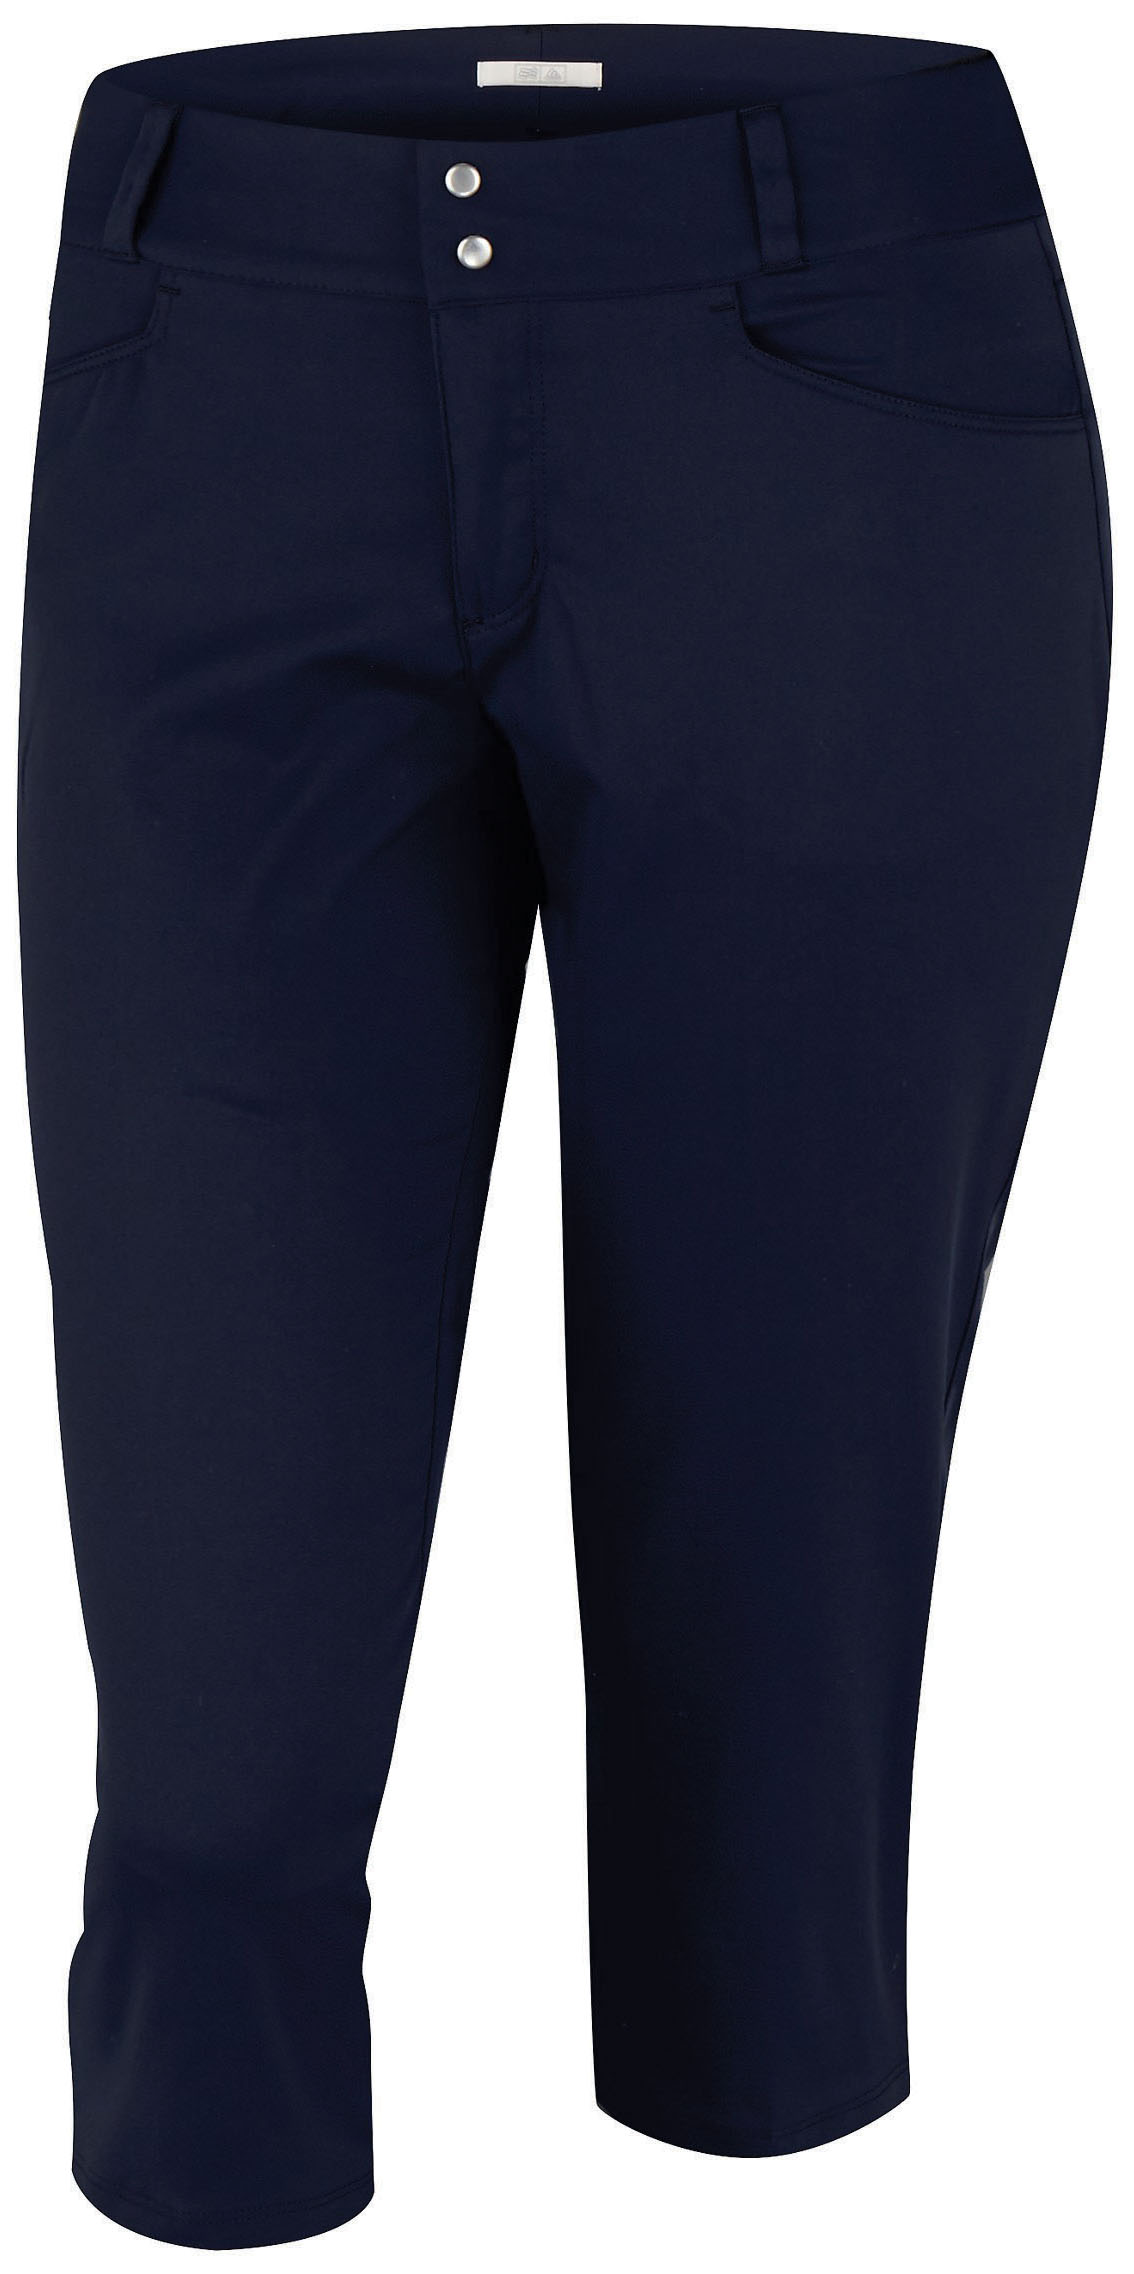 Free shipping BOTH ways on navy blue pants women, from our vast selection of styles. Fast delivery, and 24/7/ real-person service with a smile. Click or call